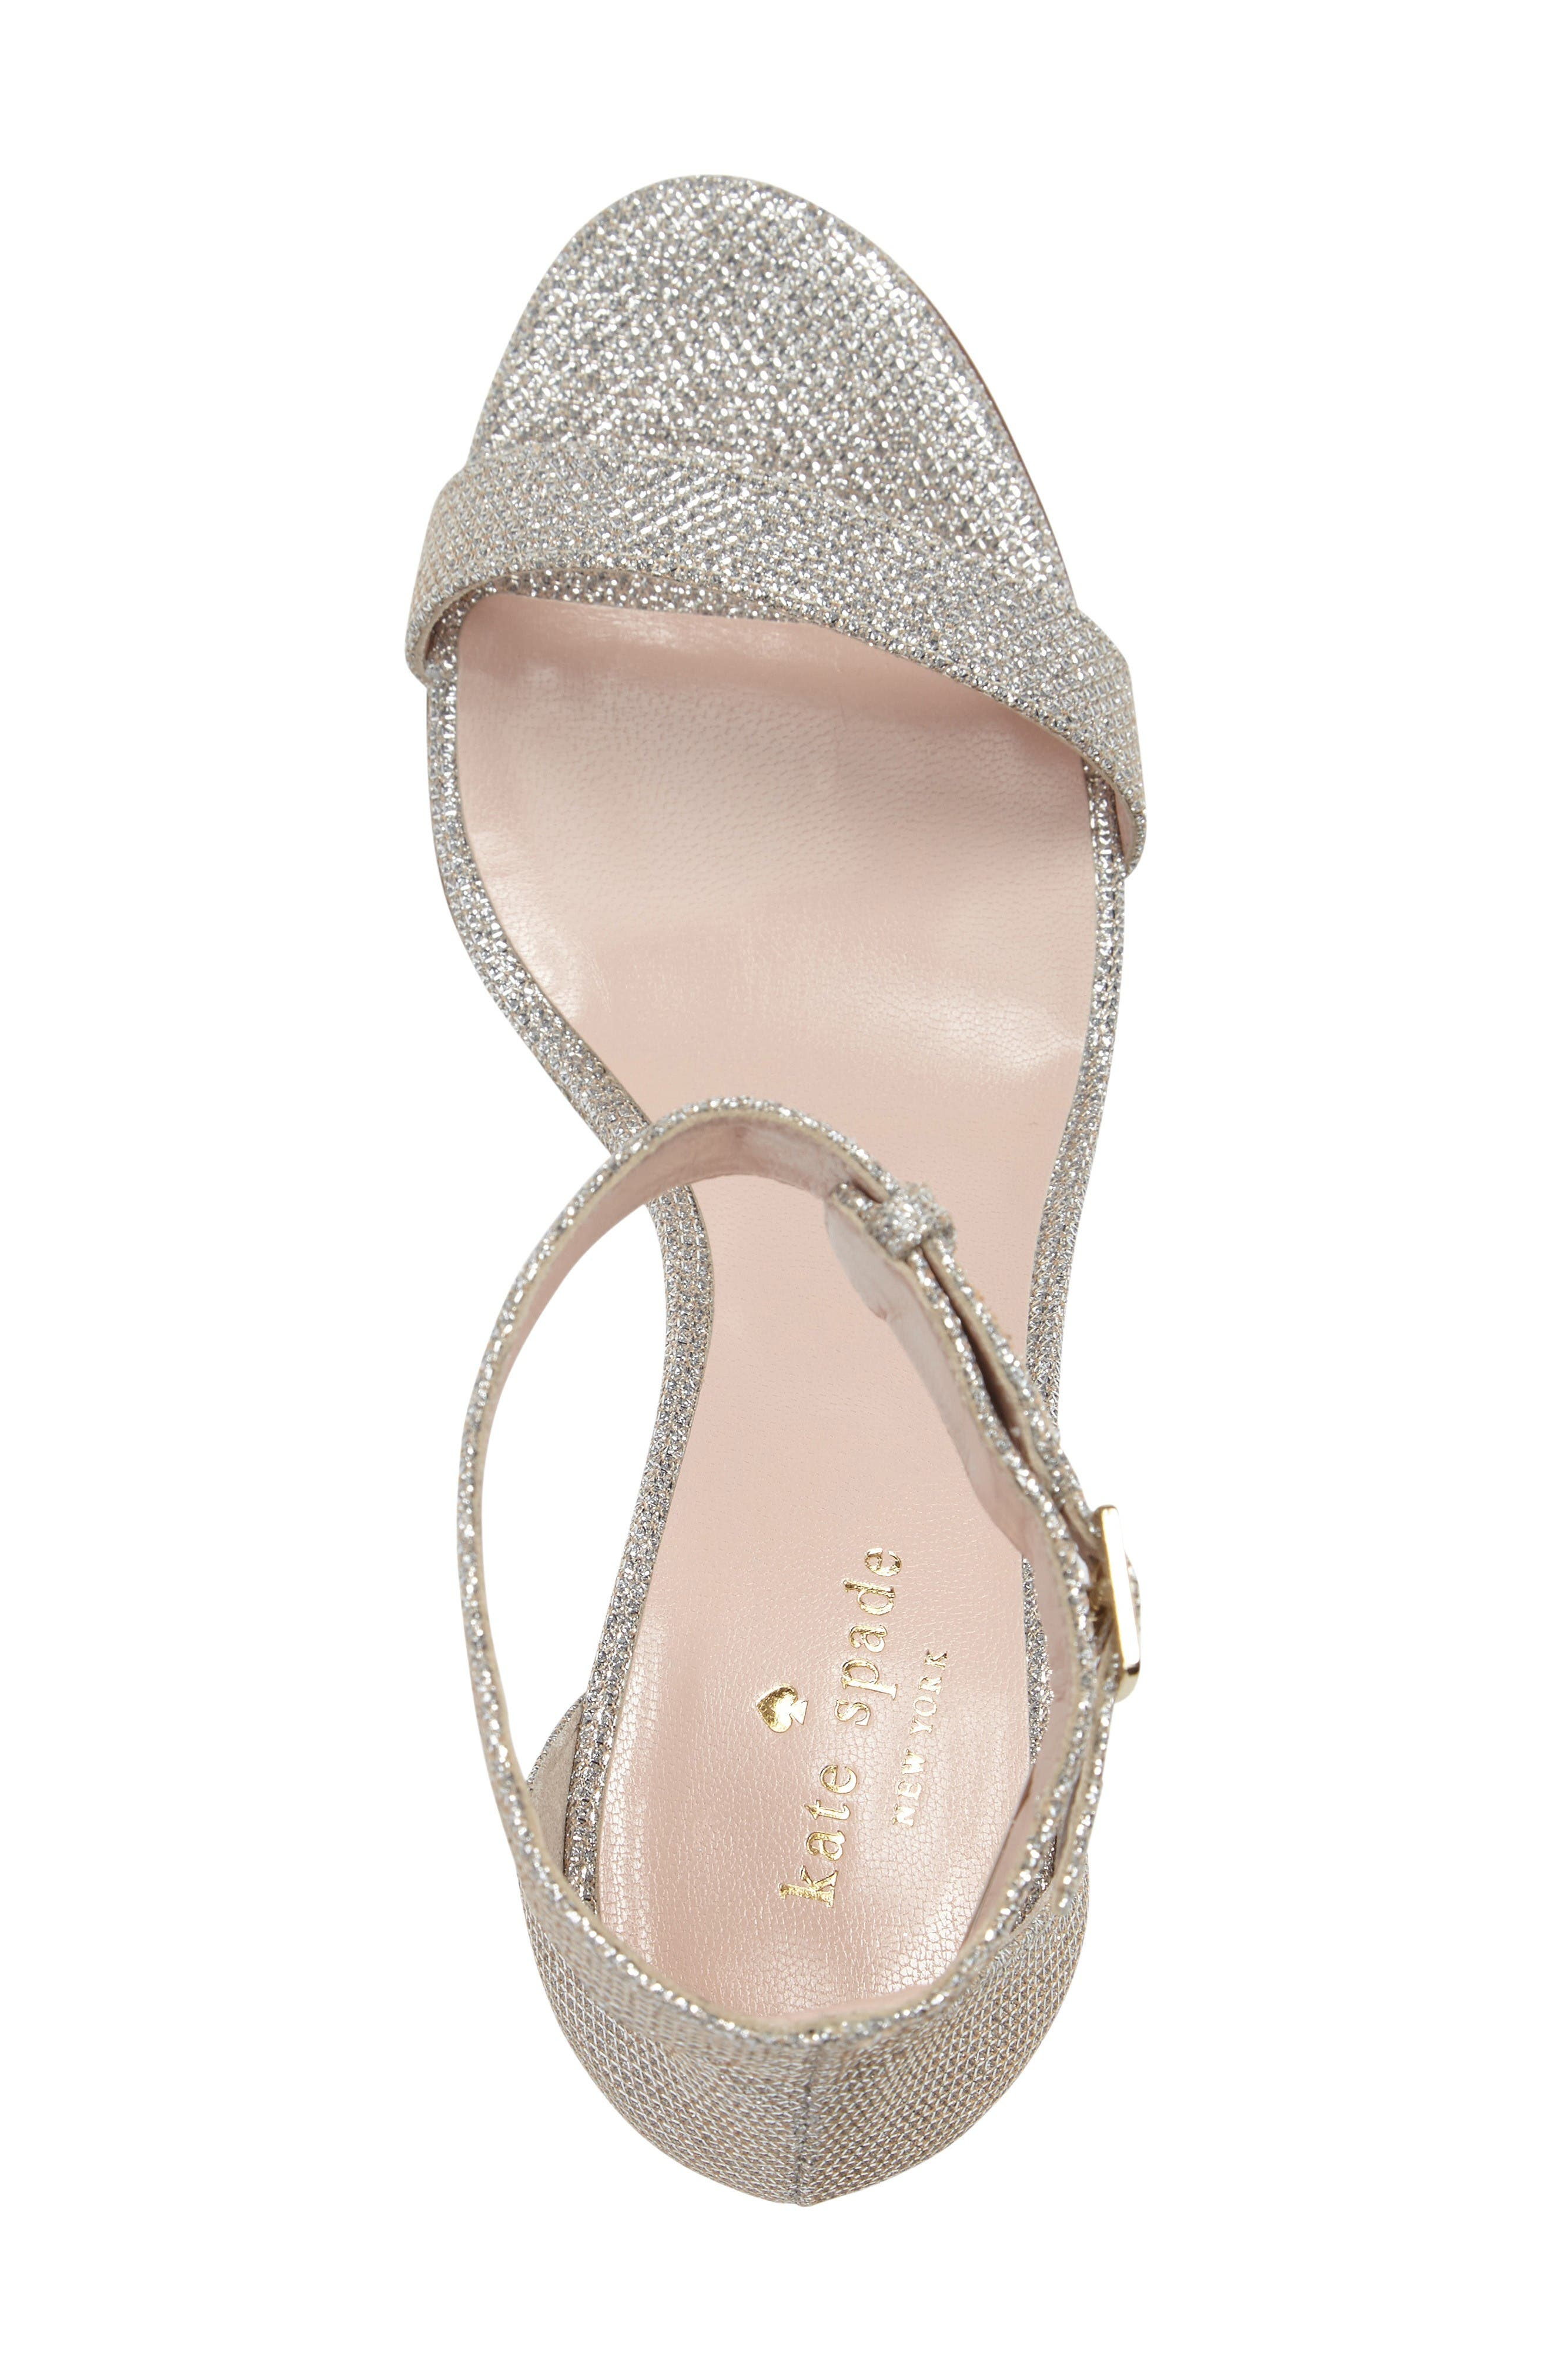 'ronia' wedge sandal,                             Alternate thumbnail 3, color,                             Silver/ Natural